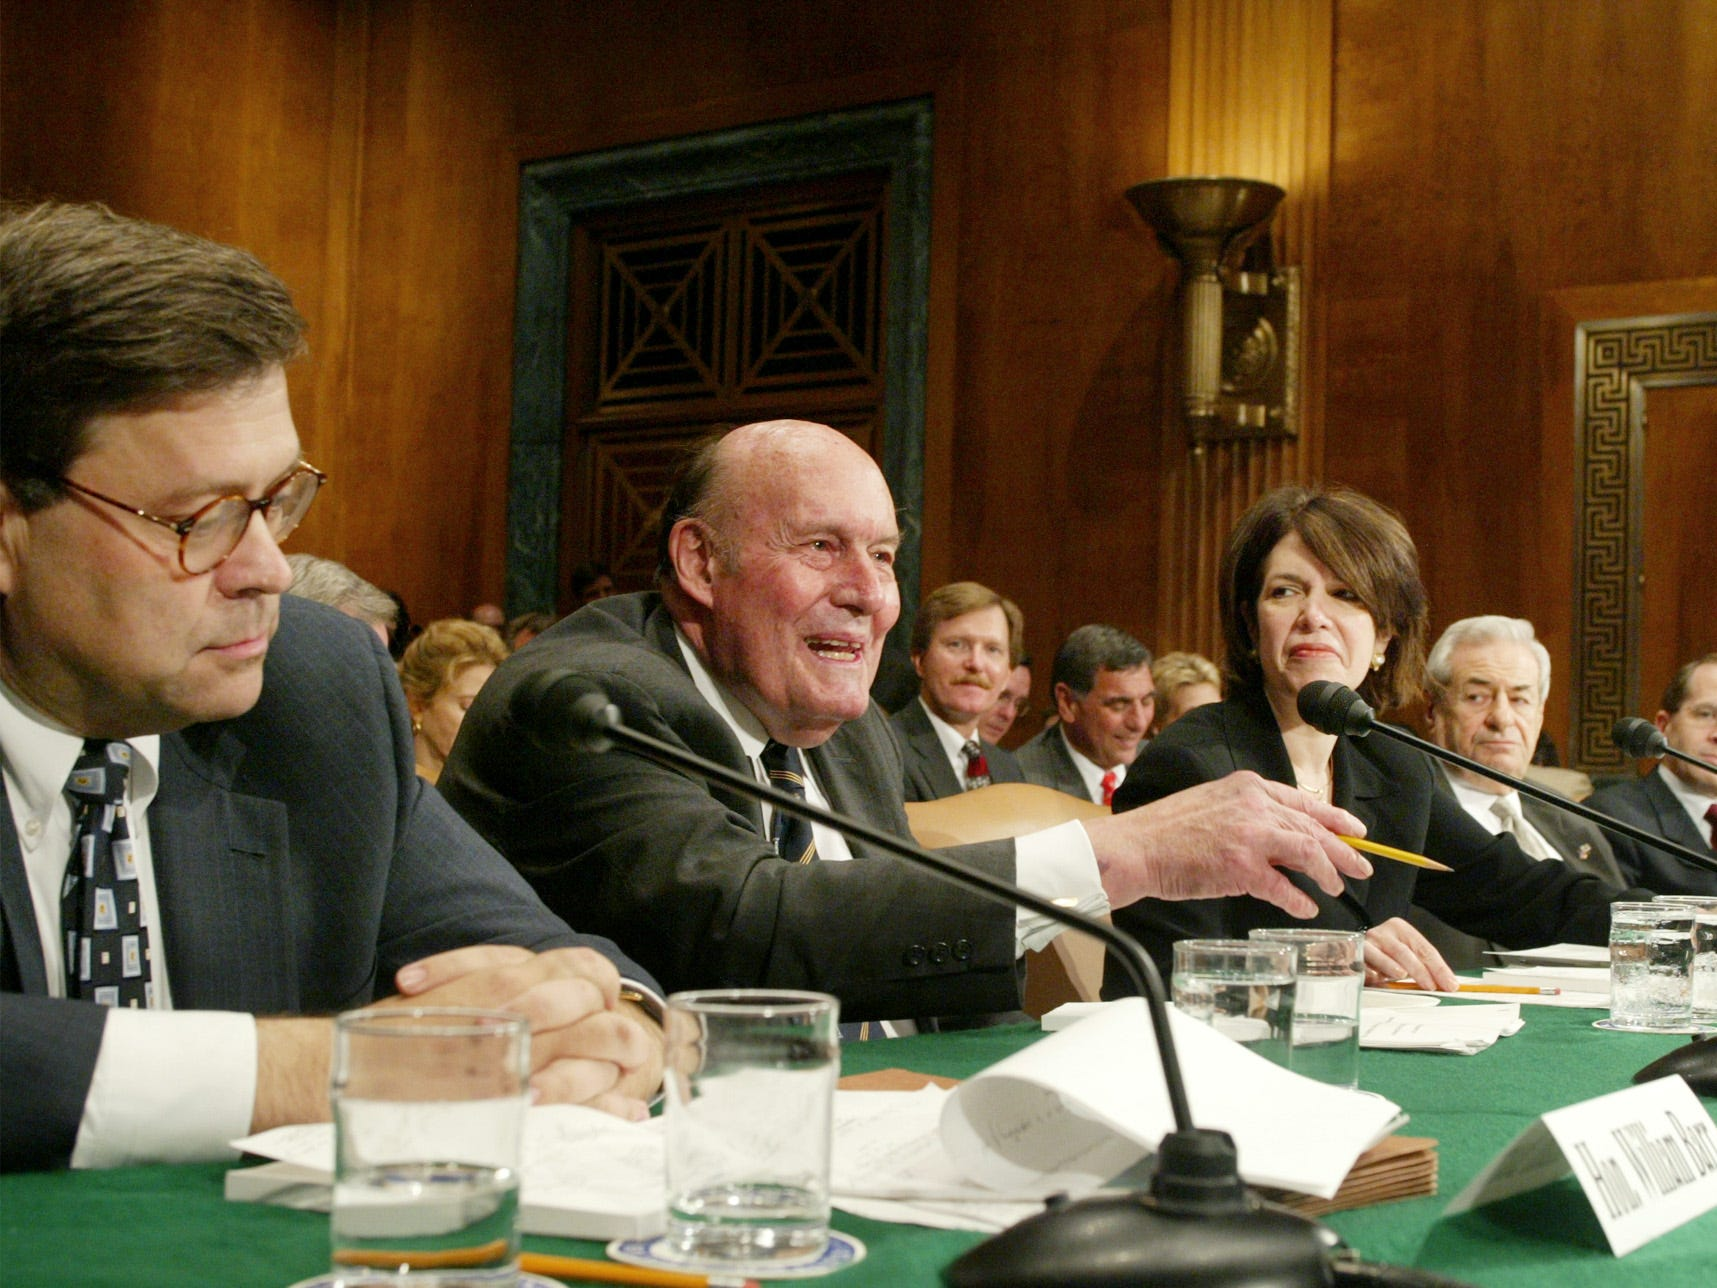 "Board member of MCI Telecommunications, Nicholas Katzenbach, second left, speaks at hearing before the Senate Committee on the Judiciary on ""The WorldCom Case: Looking at Bankruptcy and Competition Issues"" on Capitol Hill in Washington Tuesday, July 22, 2003. Witnesses are, from left, Executive Vice President and General Counsel of Verizon Communications William Barr, Katzenbach, Weil Gotshal & Manges LLP's  Marcia Goldstein, Communications Workers of America President Morton Bahr, National Bankruptcy Conference Vice-Chair Douglas Baird, Cerberus Capital Management Chief Operation Officer Mark Neporent. (AP Photo/Akira Ono)"